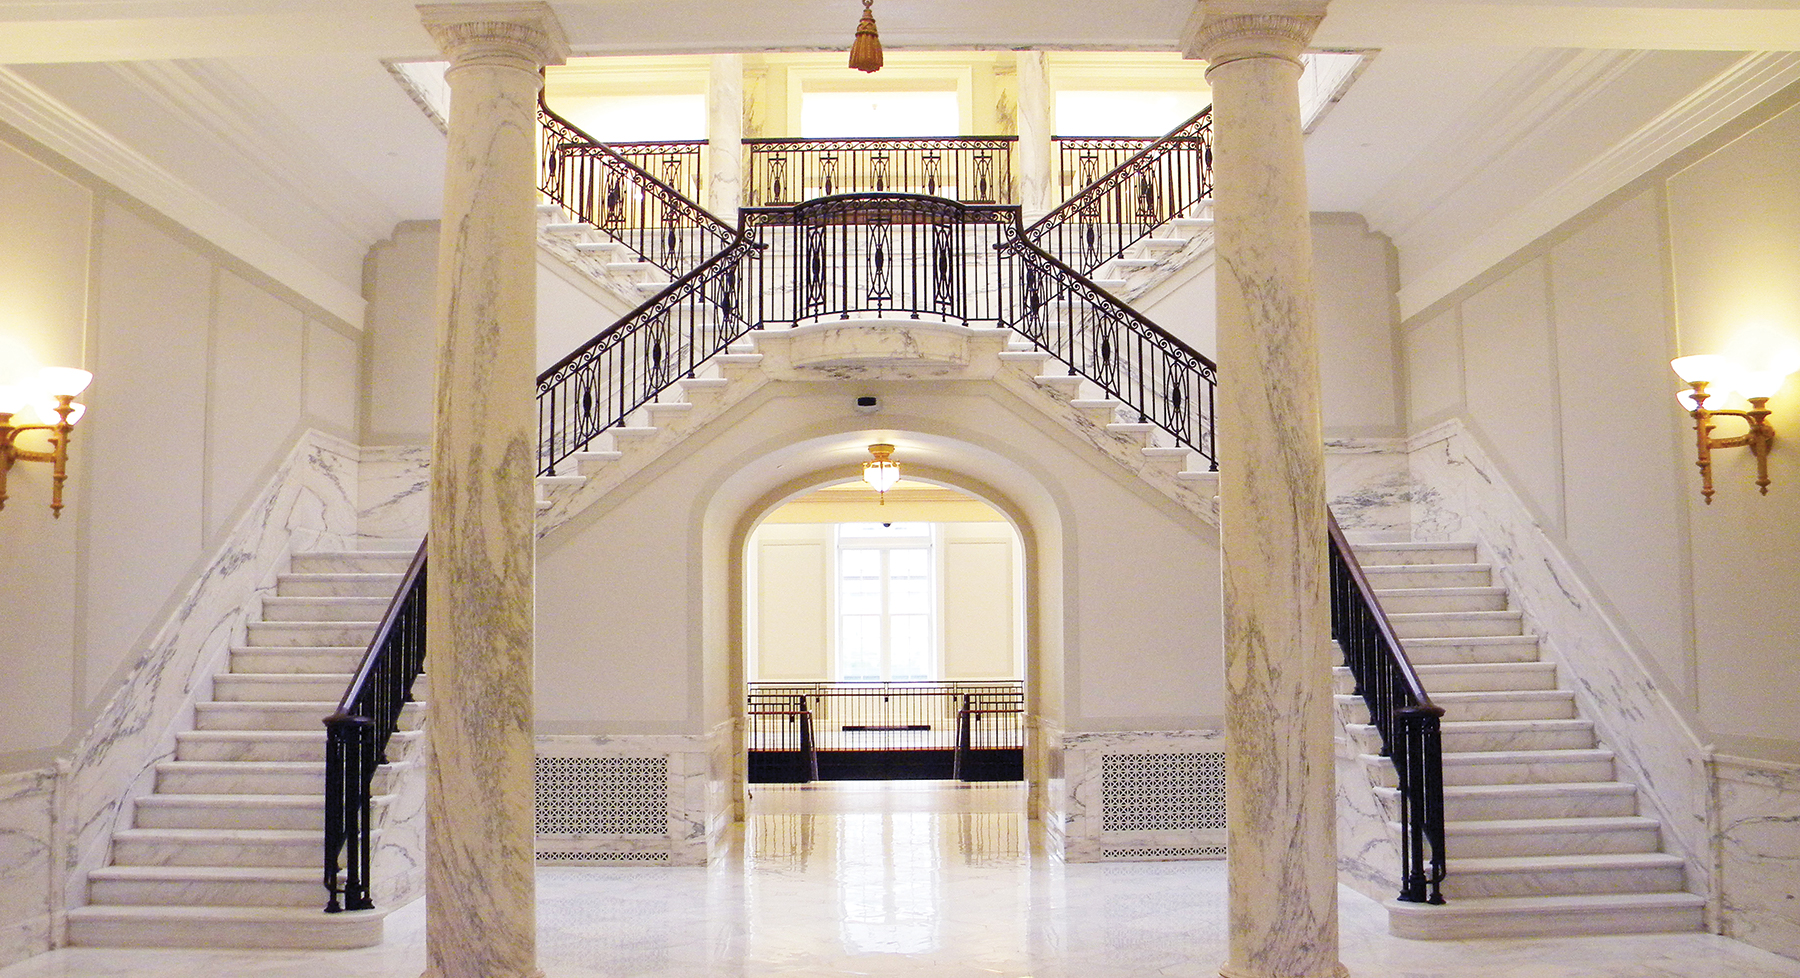 Court of Appeals Marble Staircase